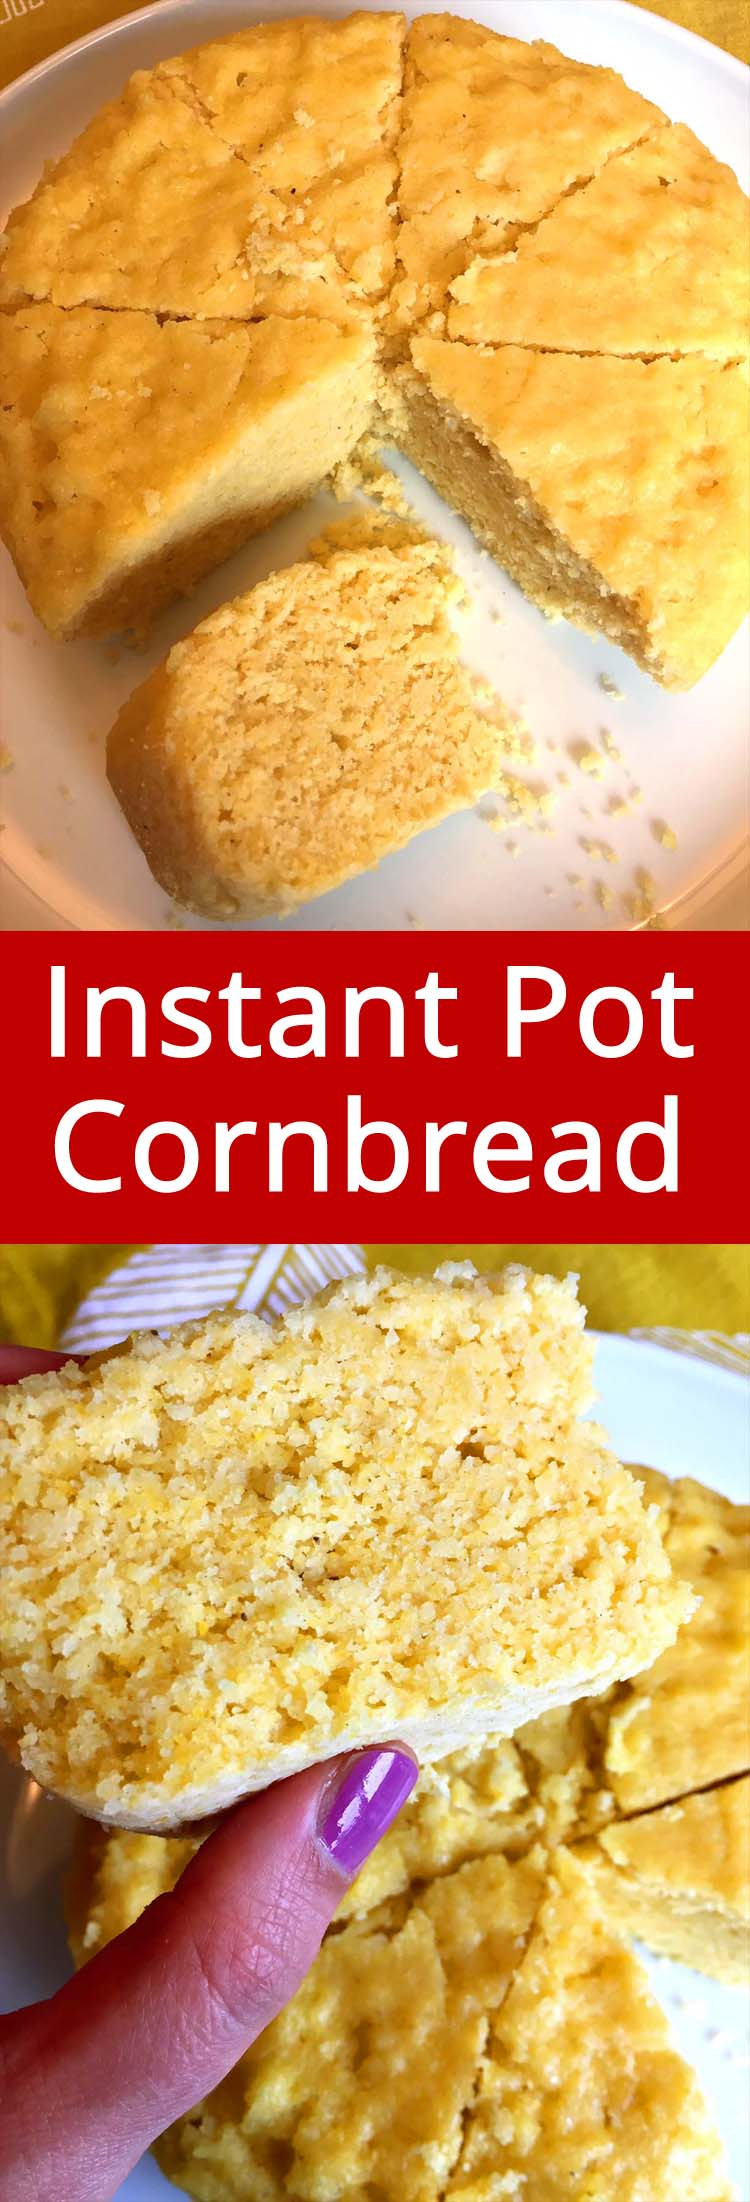 This Instant Pot cornbread is amazing! Truly the best ever! This is the only cornbread recipe you'll ever need!